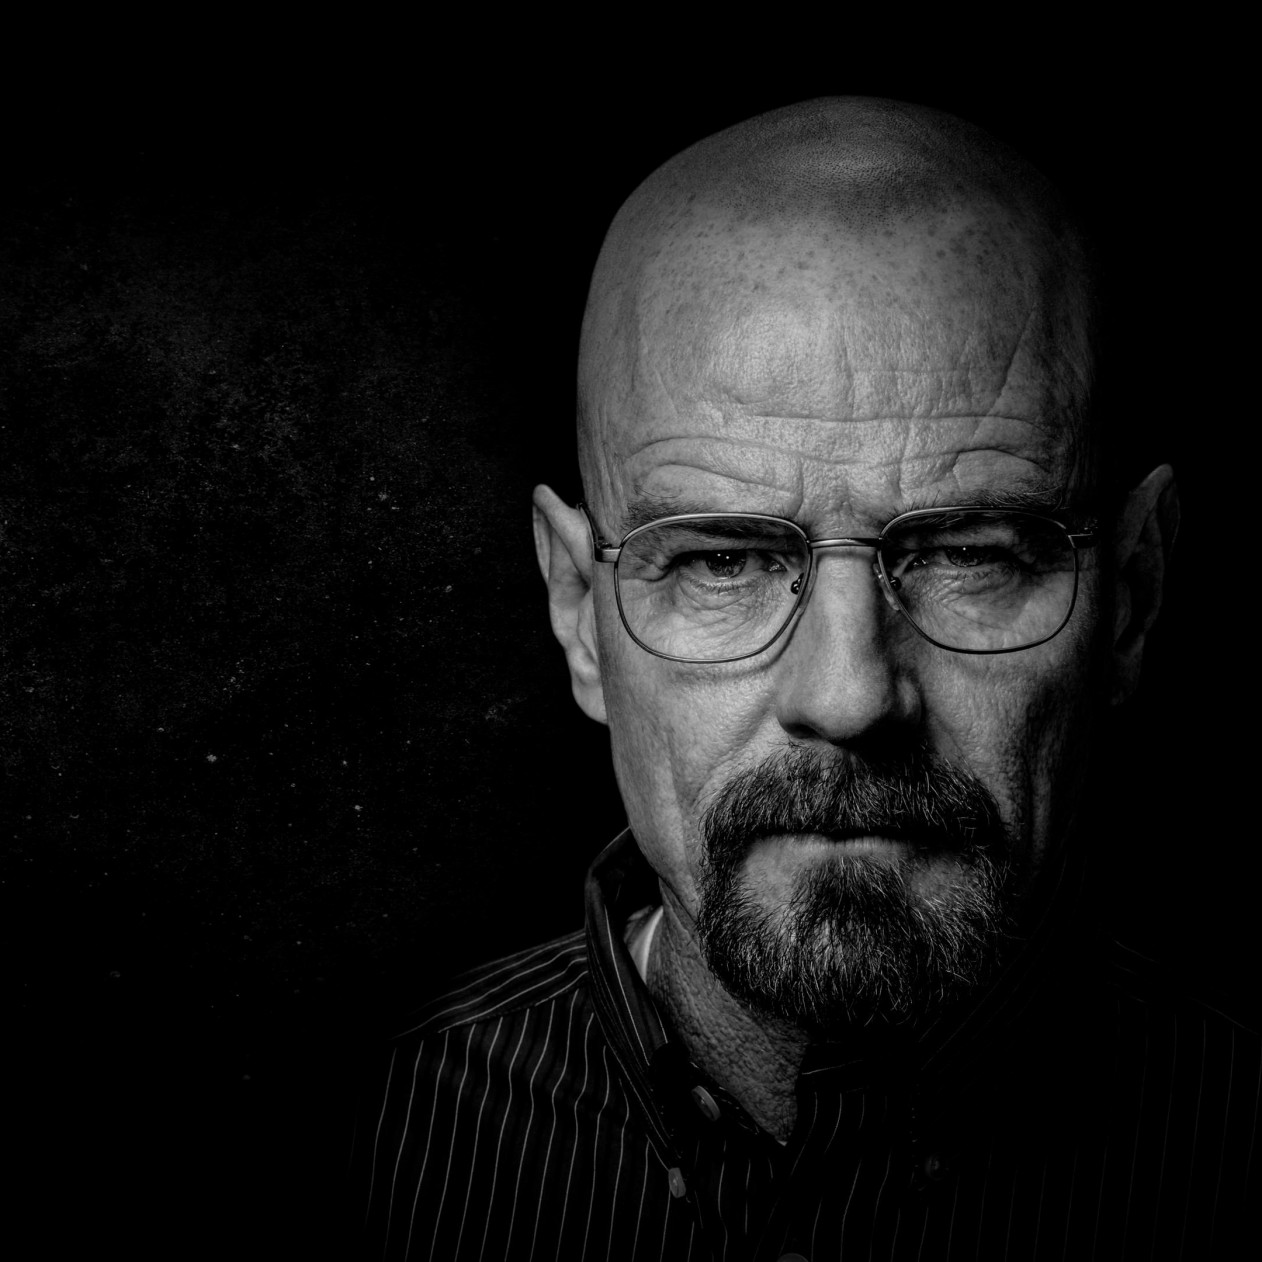 Breaking Bad - Walter White - Black & White Wallpaper for Apple iPad mini